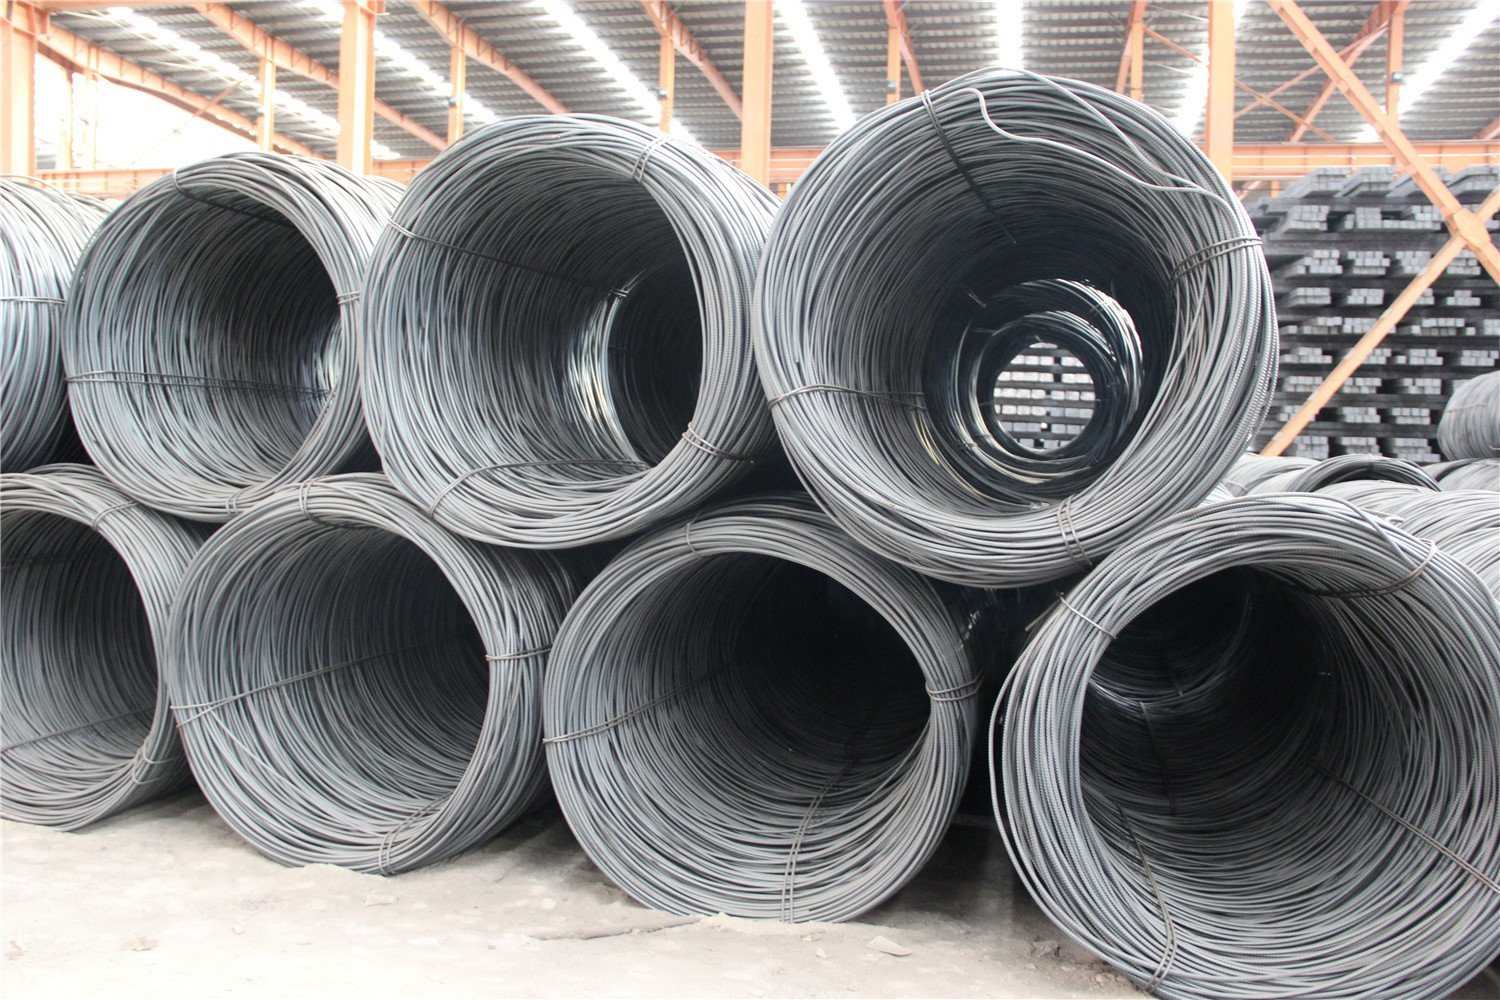 China 4.5mm Steel Wire Rod in Coils - China Wire Rod, Wire Rods